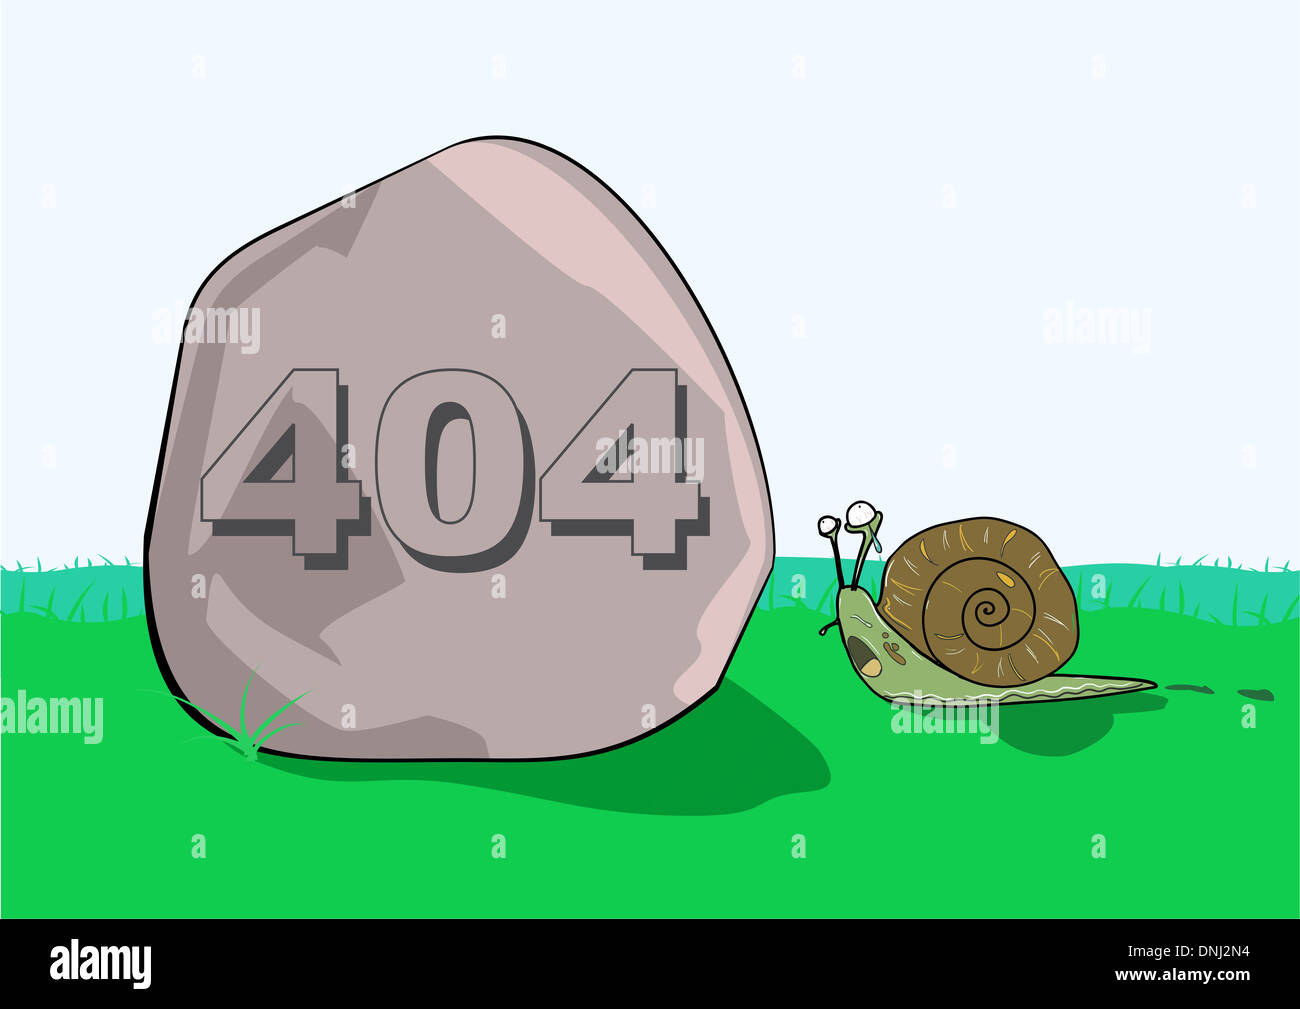 Illustrative representation of 404 error message on rock in front of a snail Stock Photo